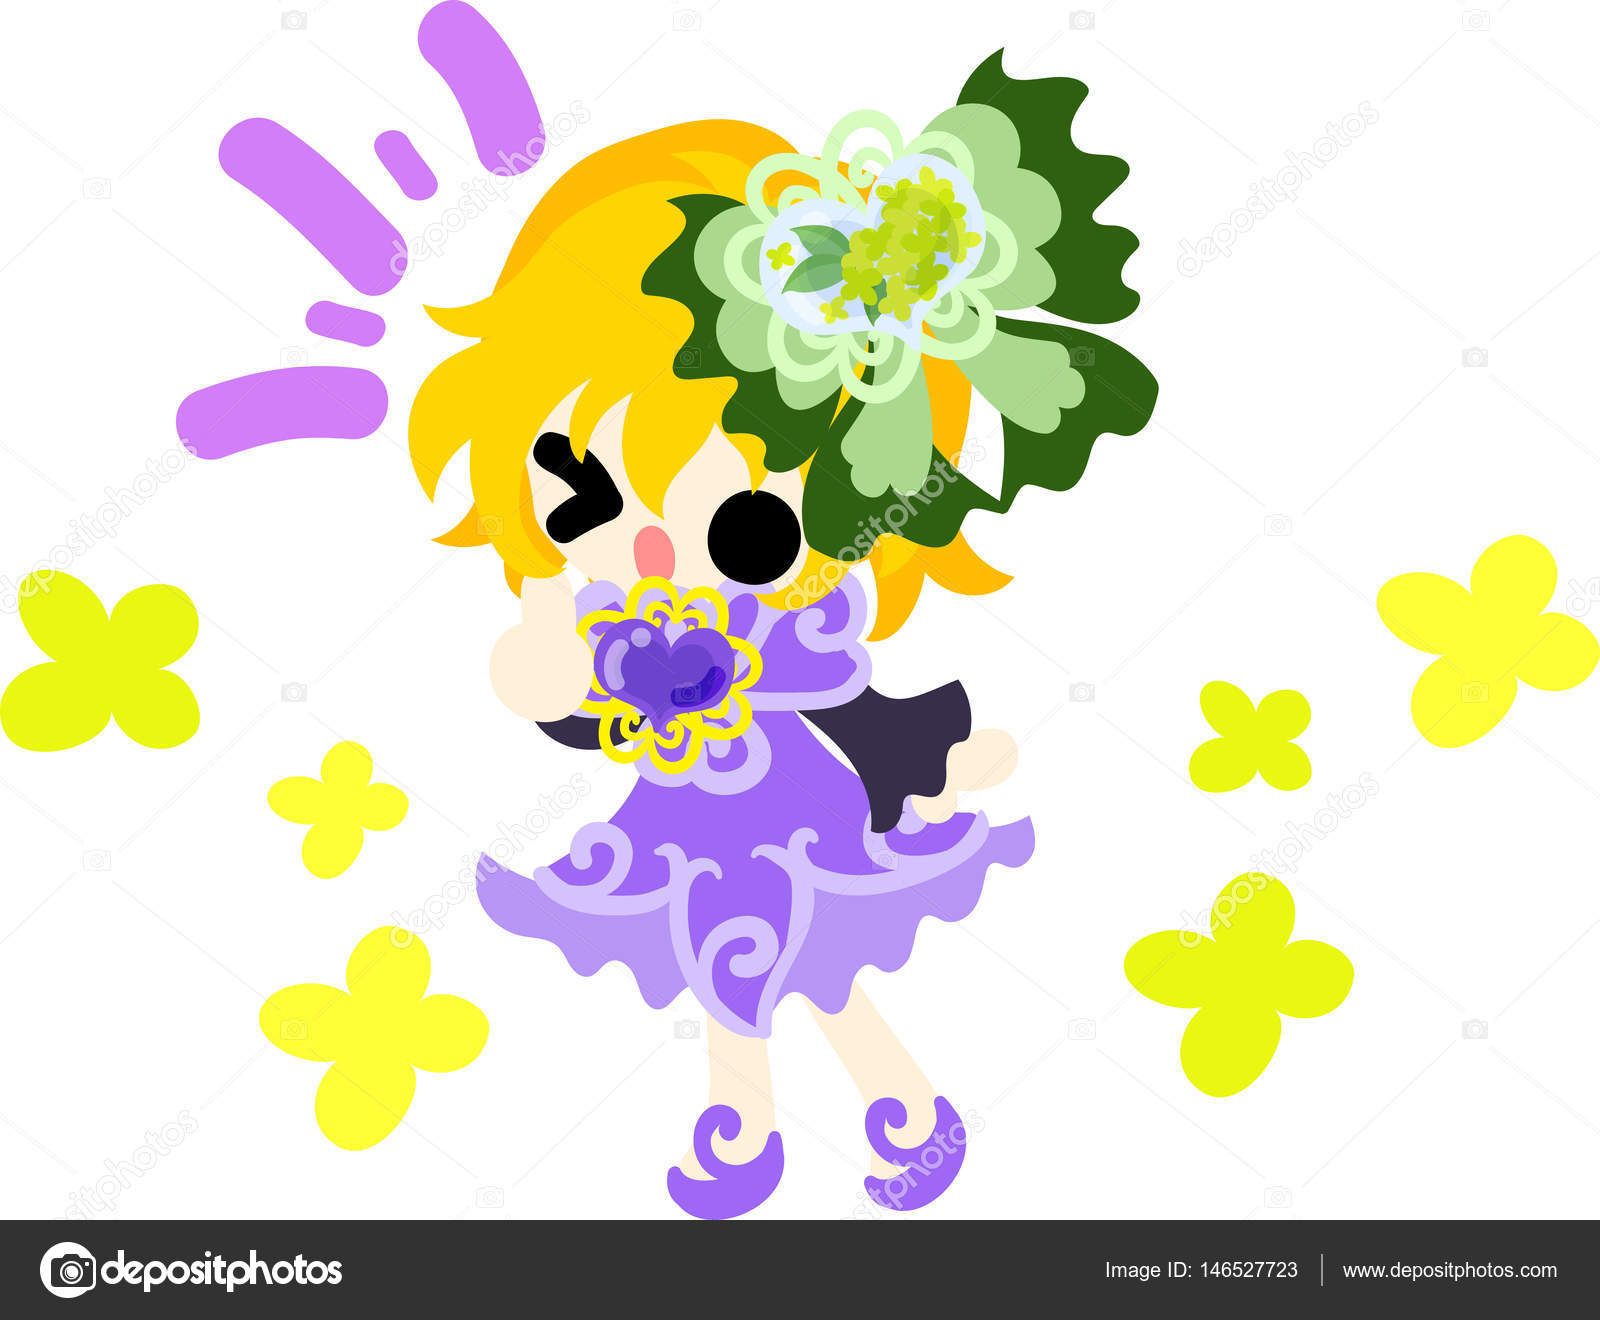 Cute girl and yellow flowers stock vector chiharu t 146527723 a cute girl and a ribbon of yellow flowers vector by chiharu t mightylinksfo